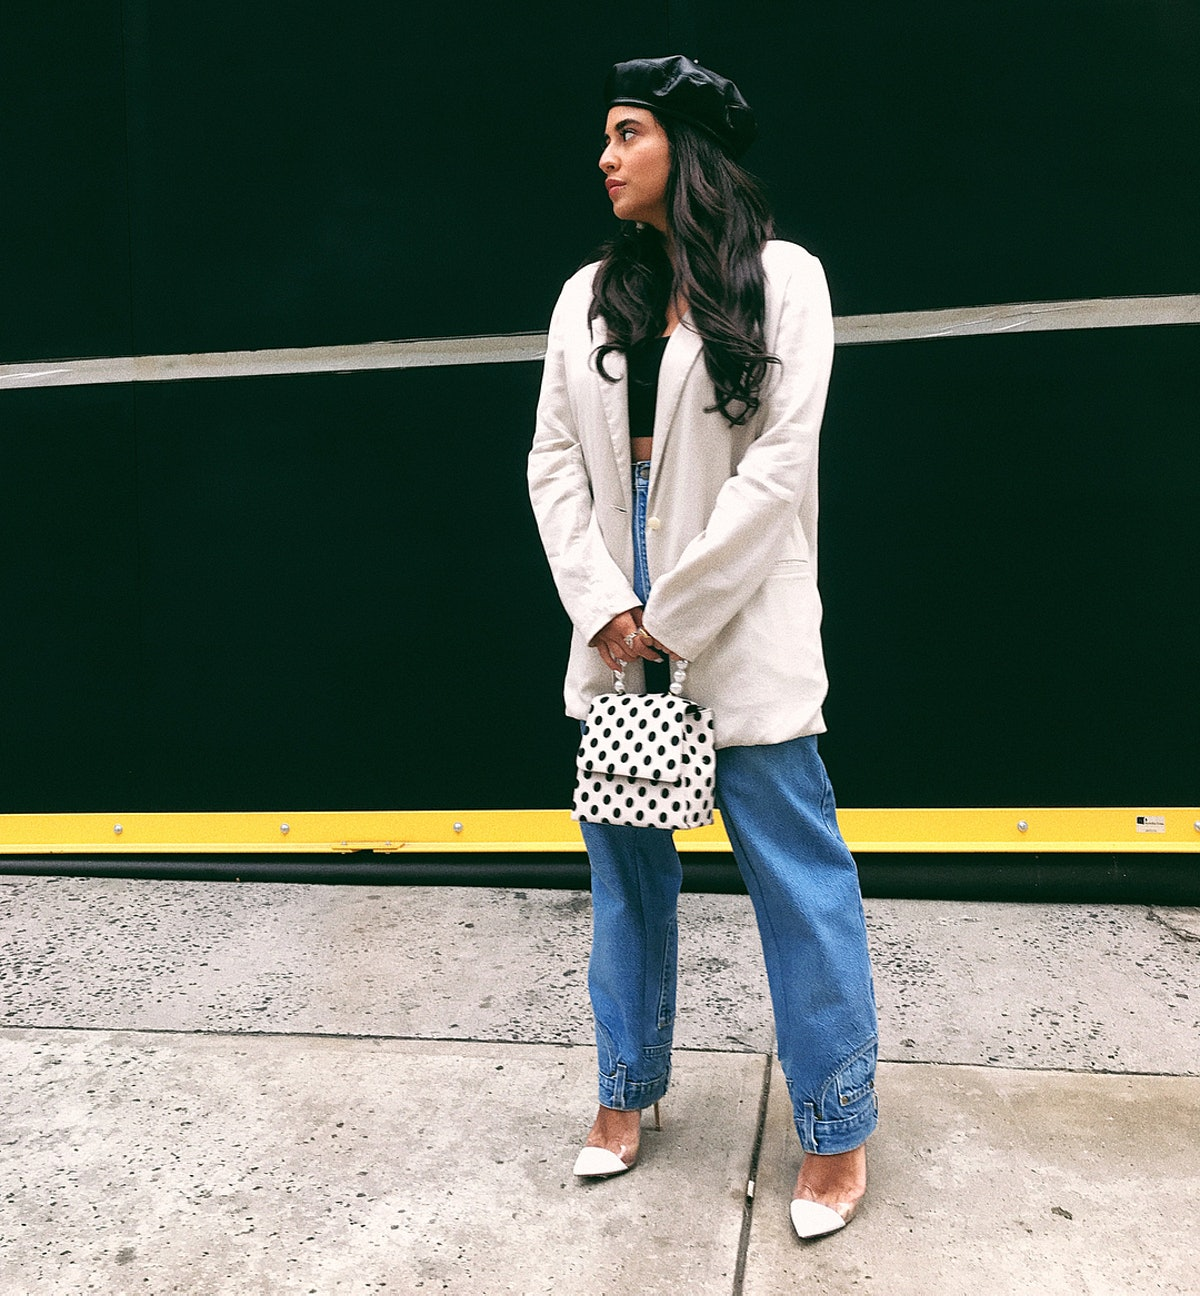 Chillhouse founder and blogger Cyndi Ramirez wears her baggy, anti-skinny jeans with an oversize bla...